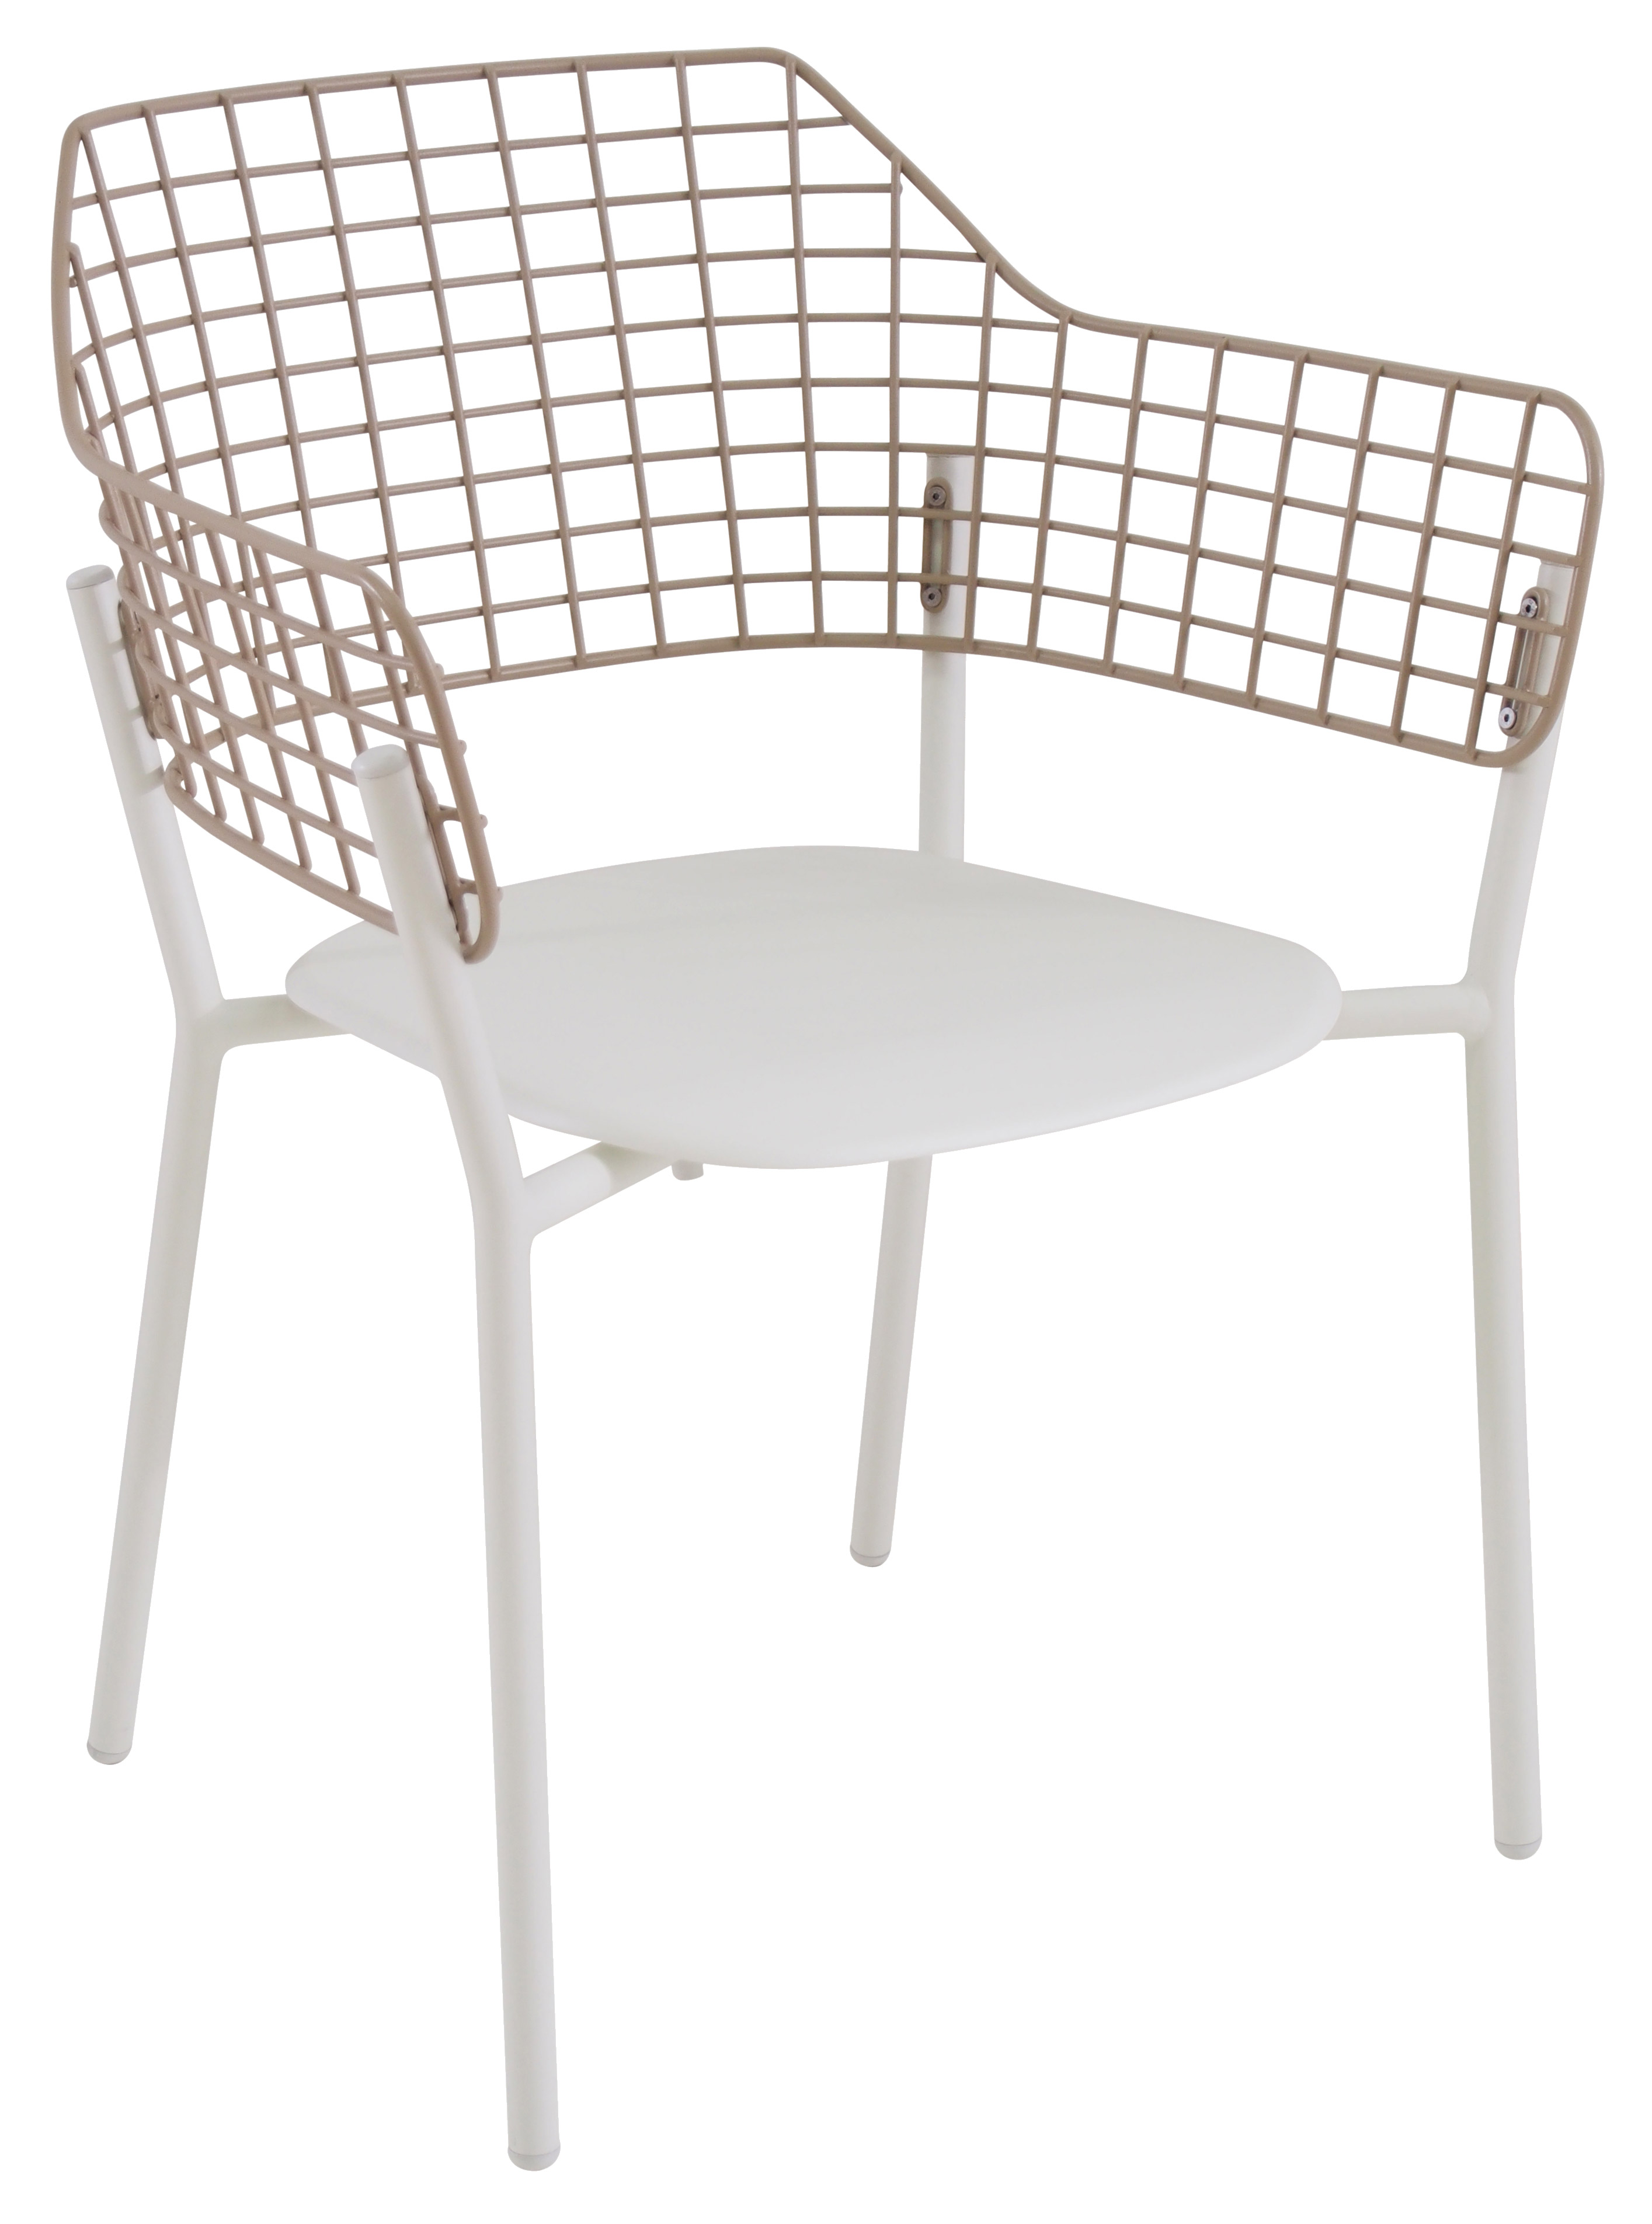 emuamericas, llc 616 chair, armchair, stacking, outdoor